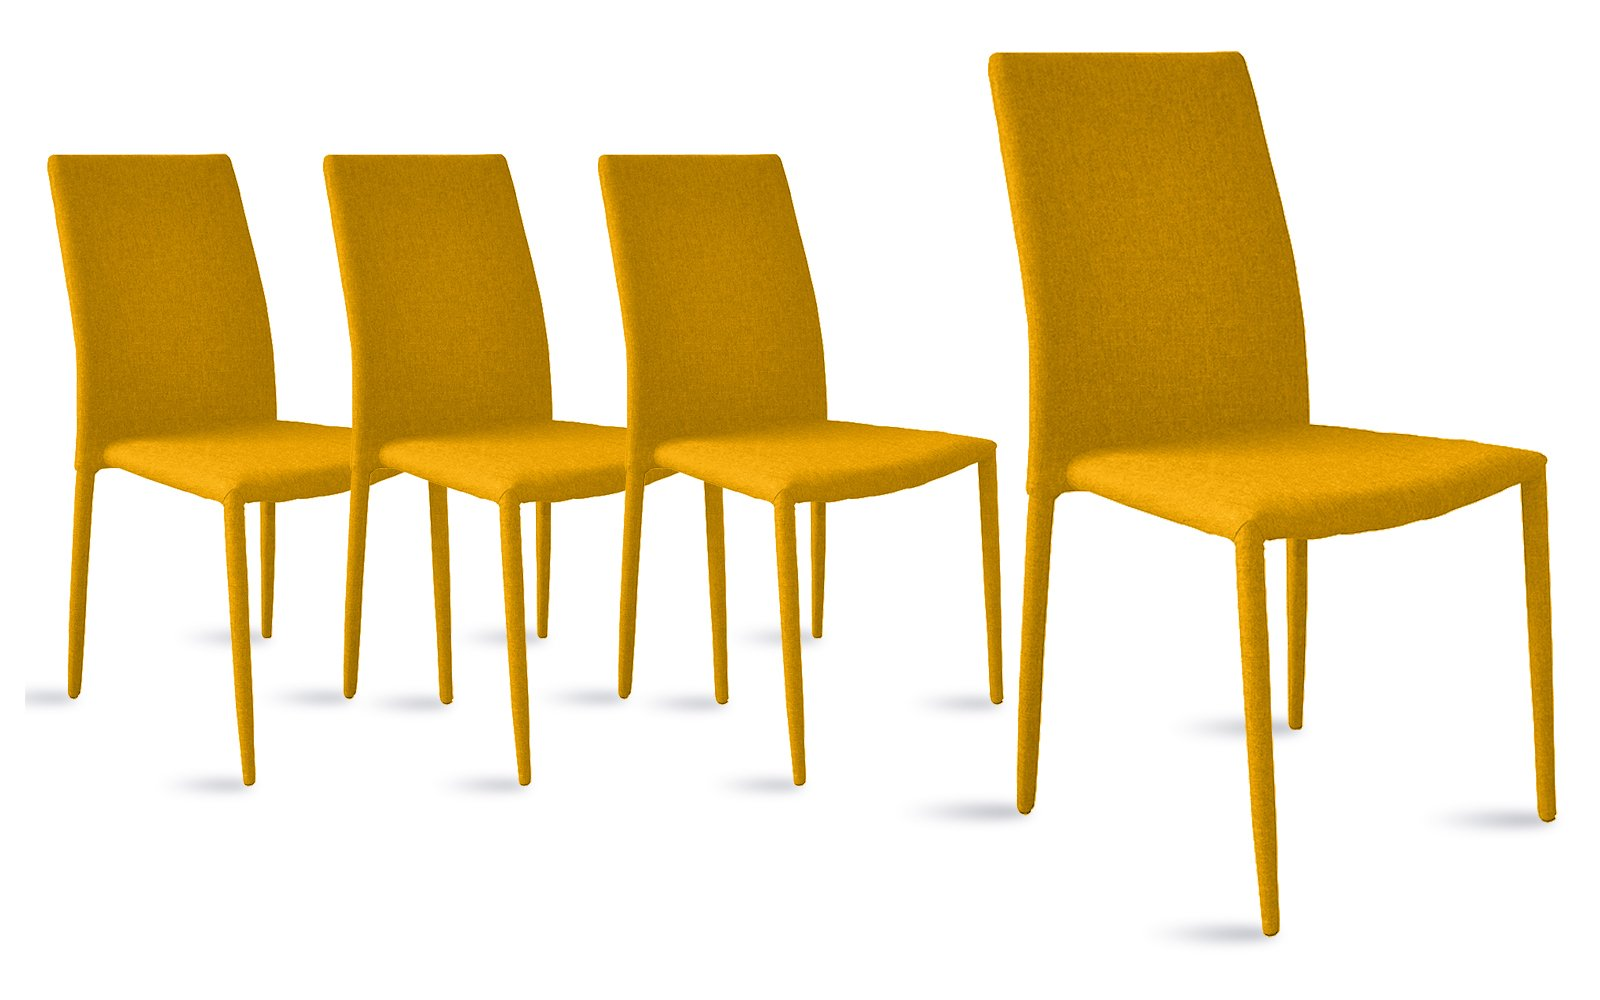 Dining Room Chairs Set of 4, Fabric Chair for Living Room 4 Pieces (Yellow)